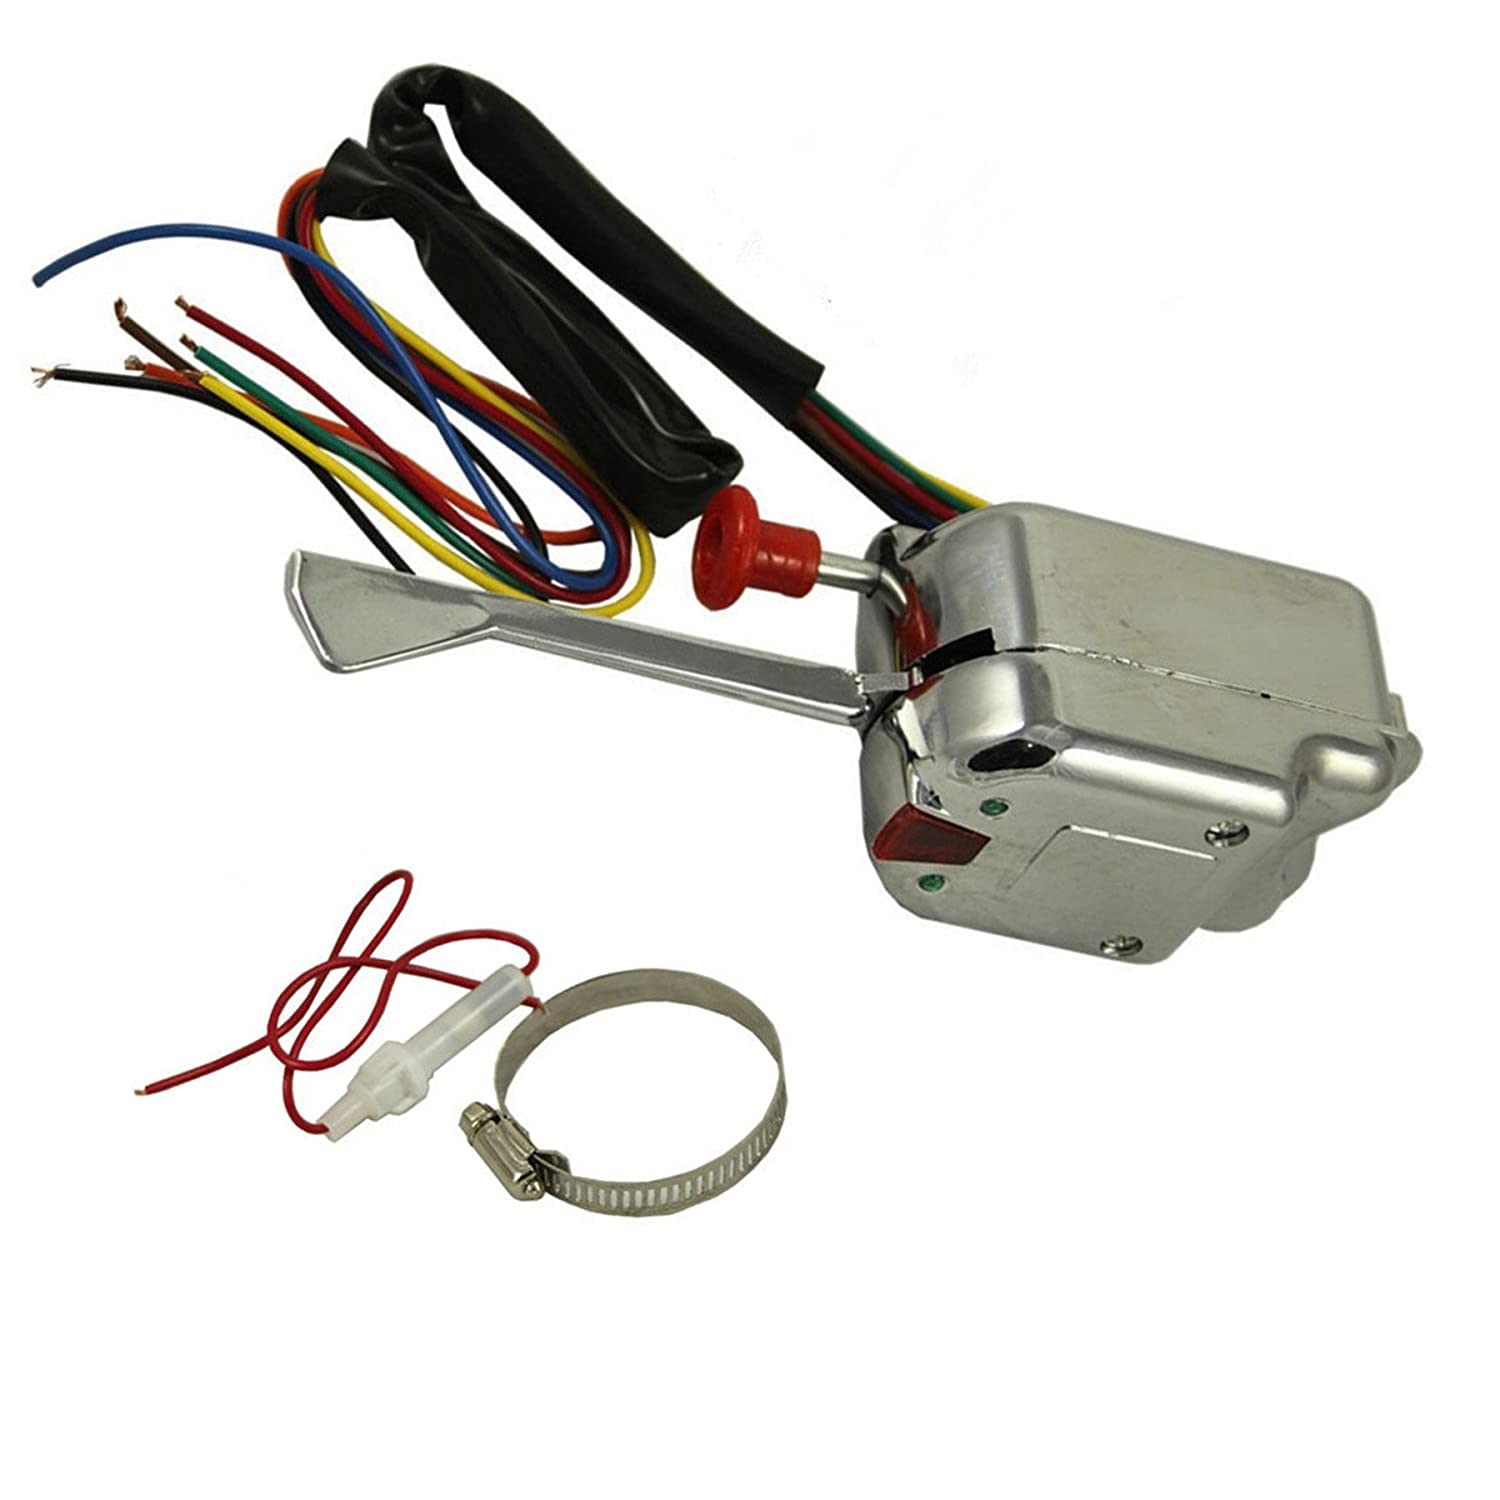 Wilk New Universal Street Hot Rod Chrome Turn Signal Dune Buggy Wiring Harness Switch For Buick Ford Gm 12v Heavy Duty Vintage Car Truck Sand Rail